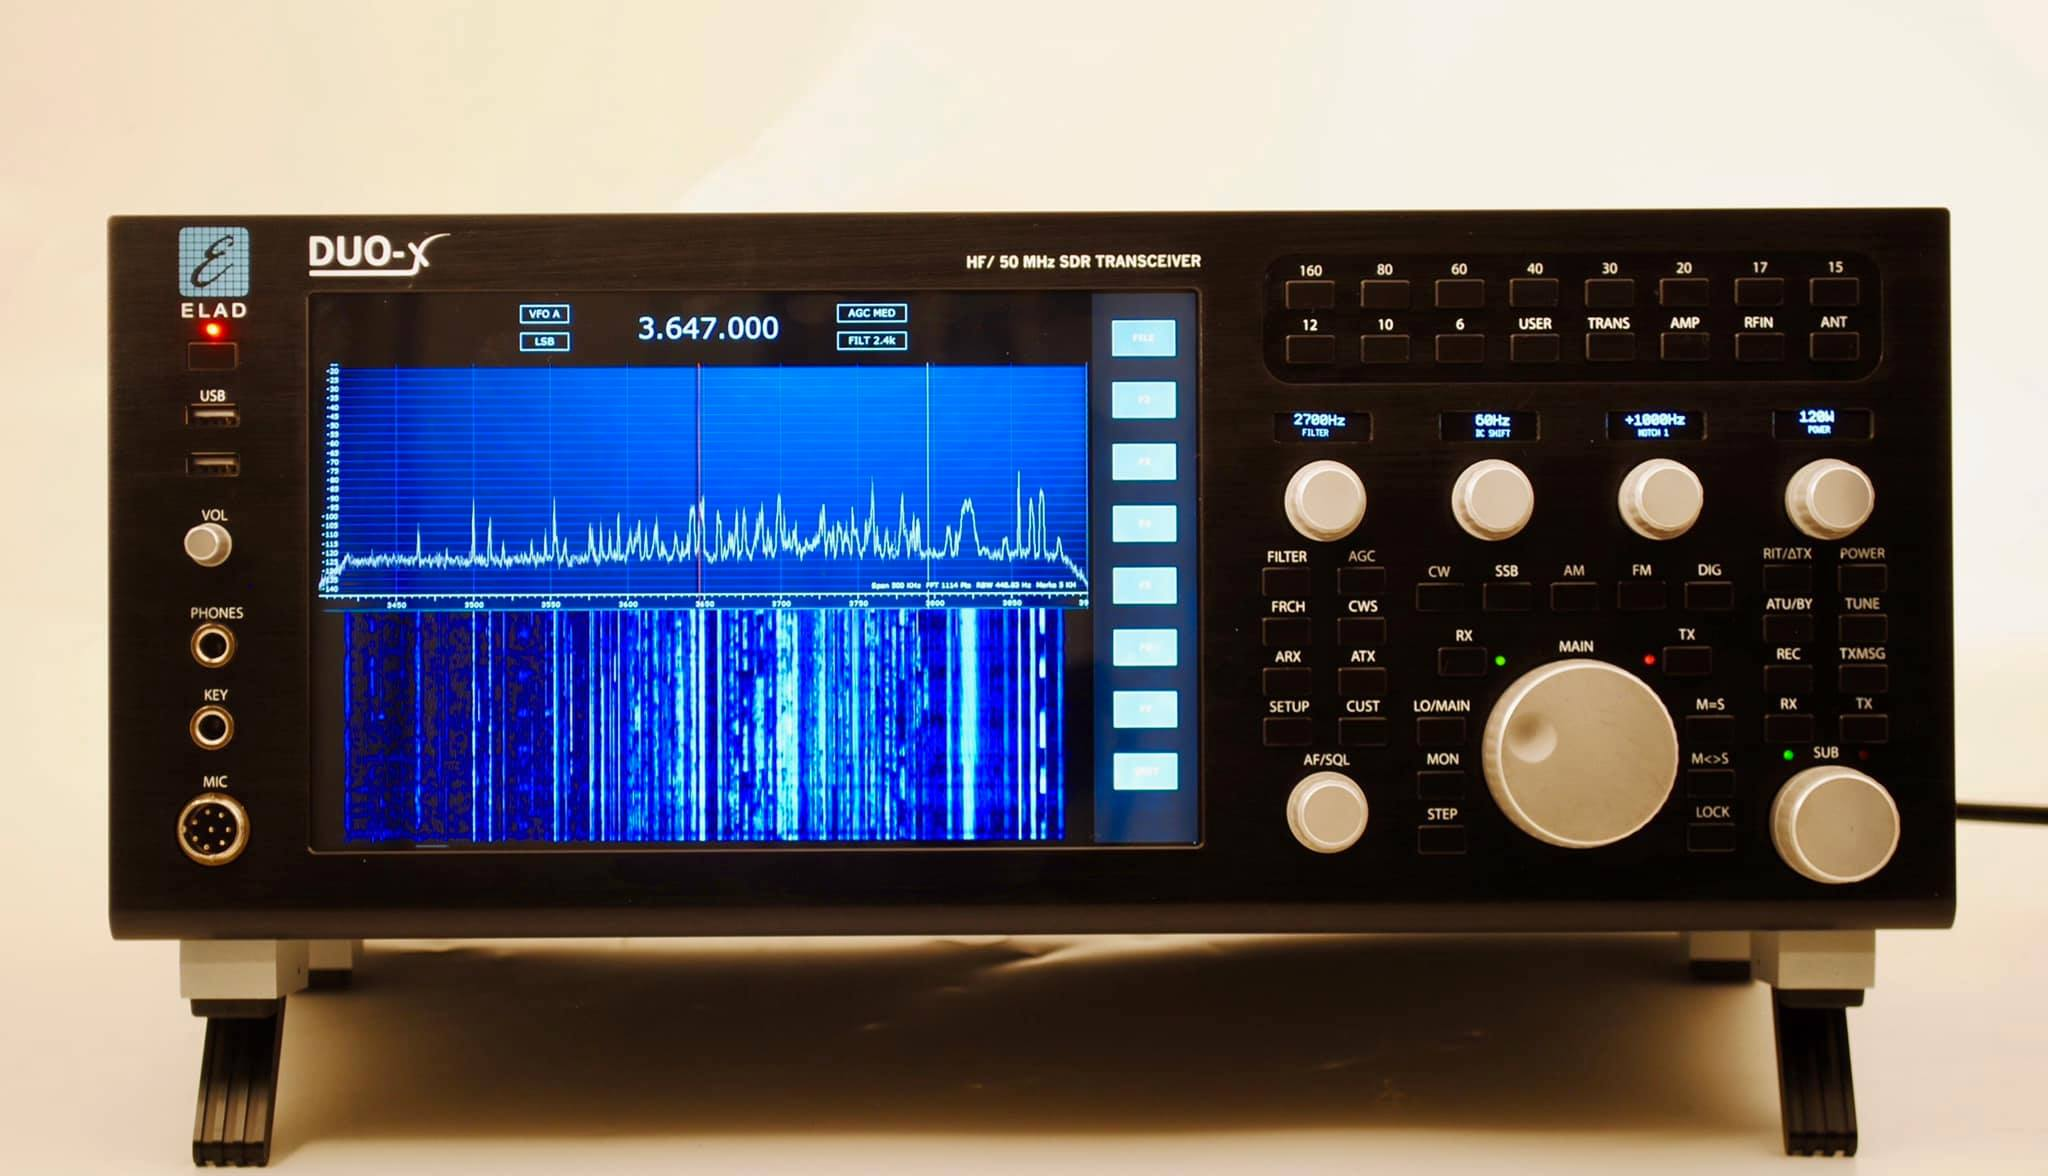 ELAD introduces the new DUO-X SDR Transceiver | The SWLing Post